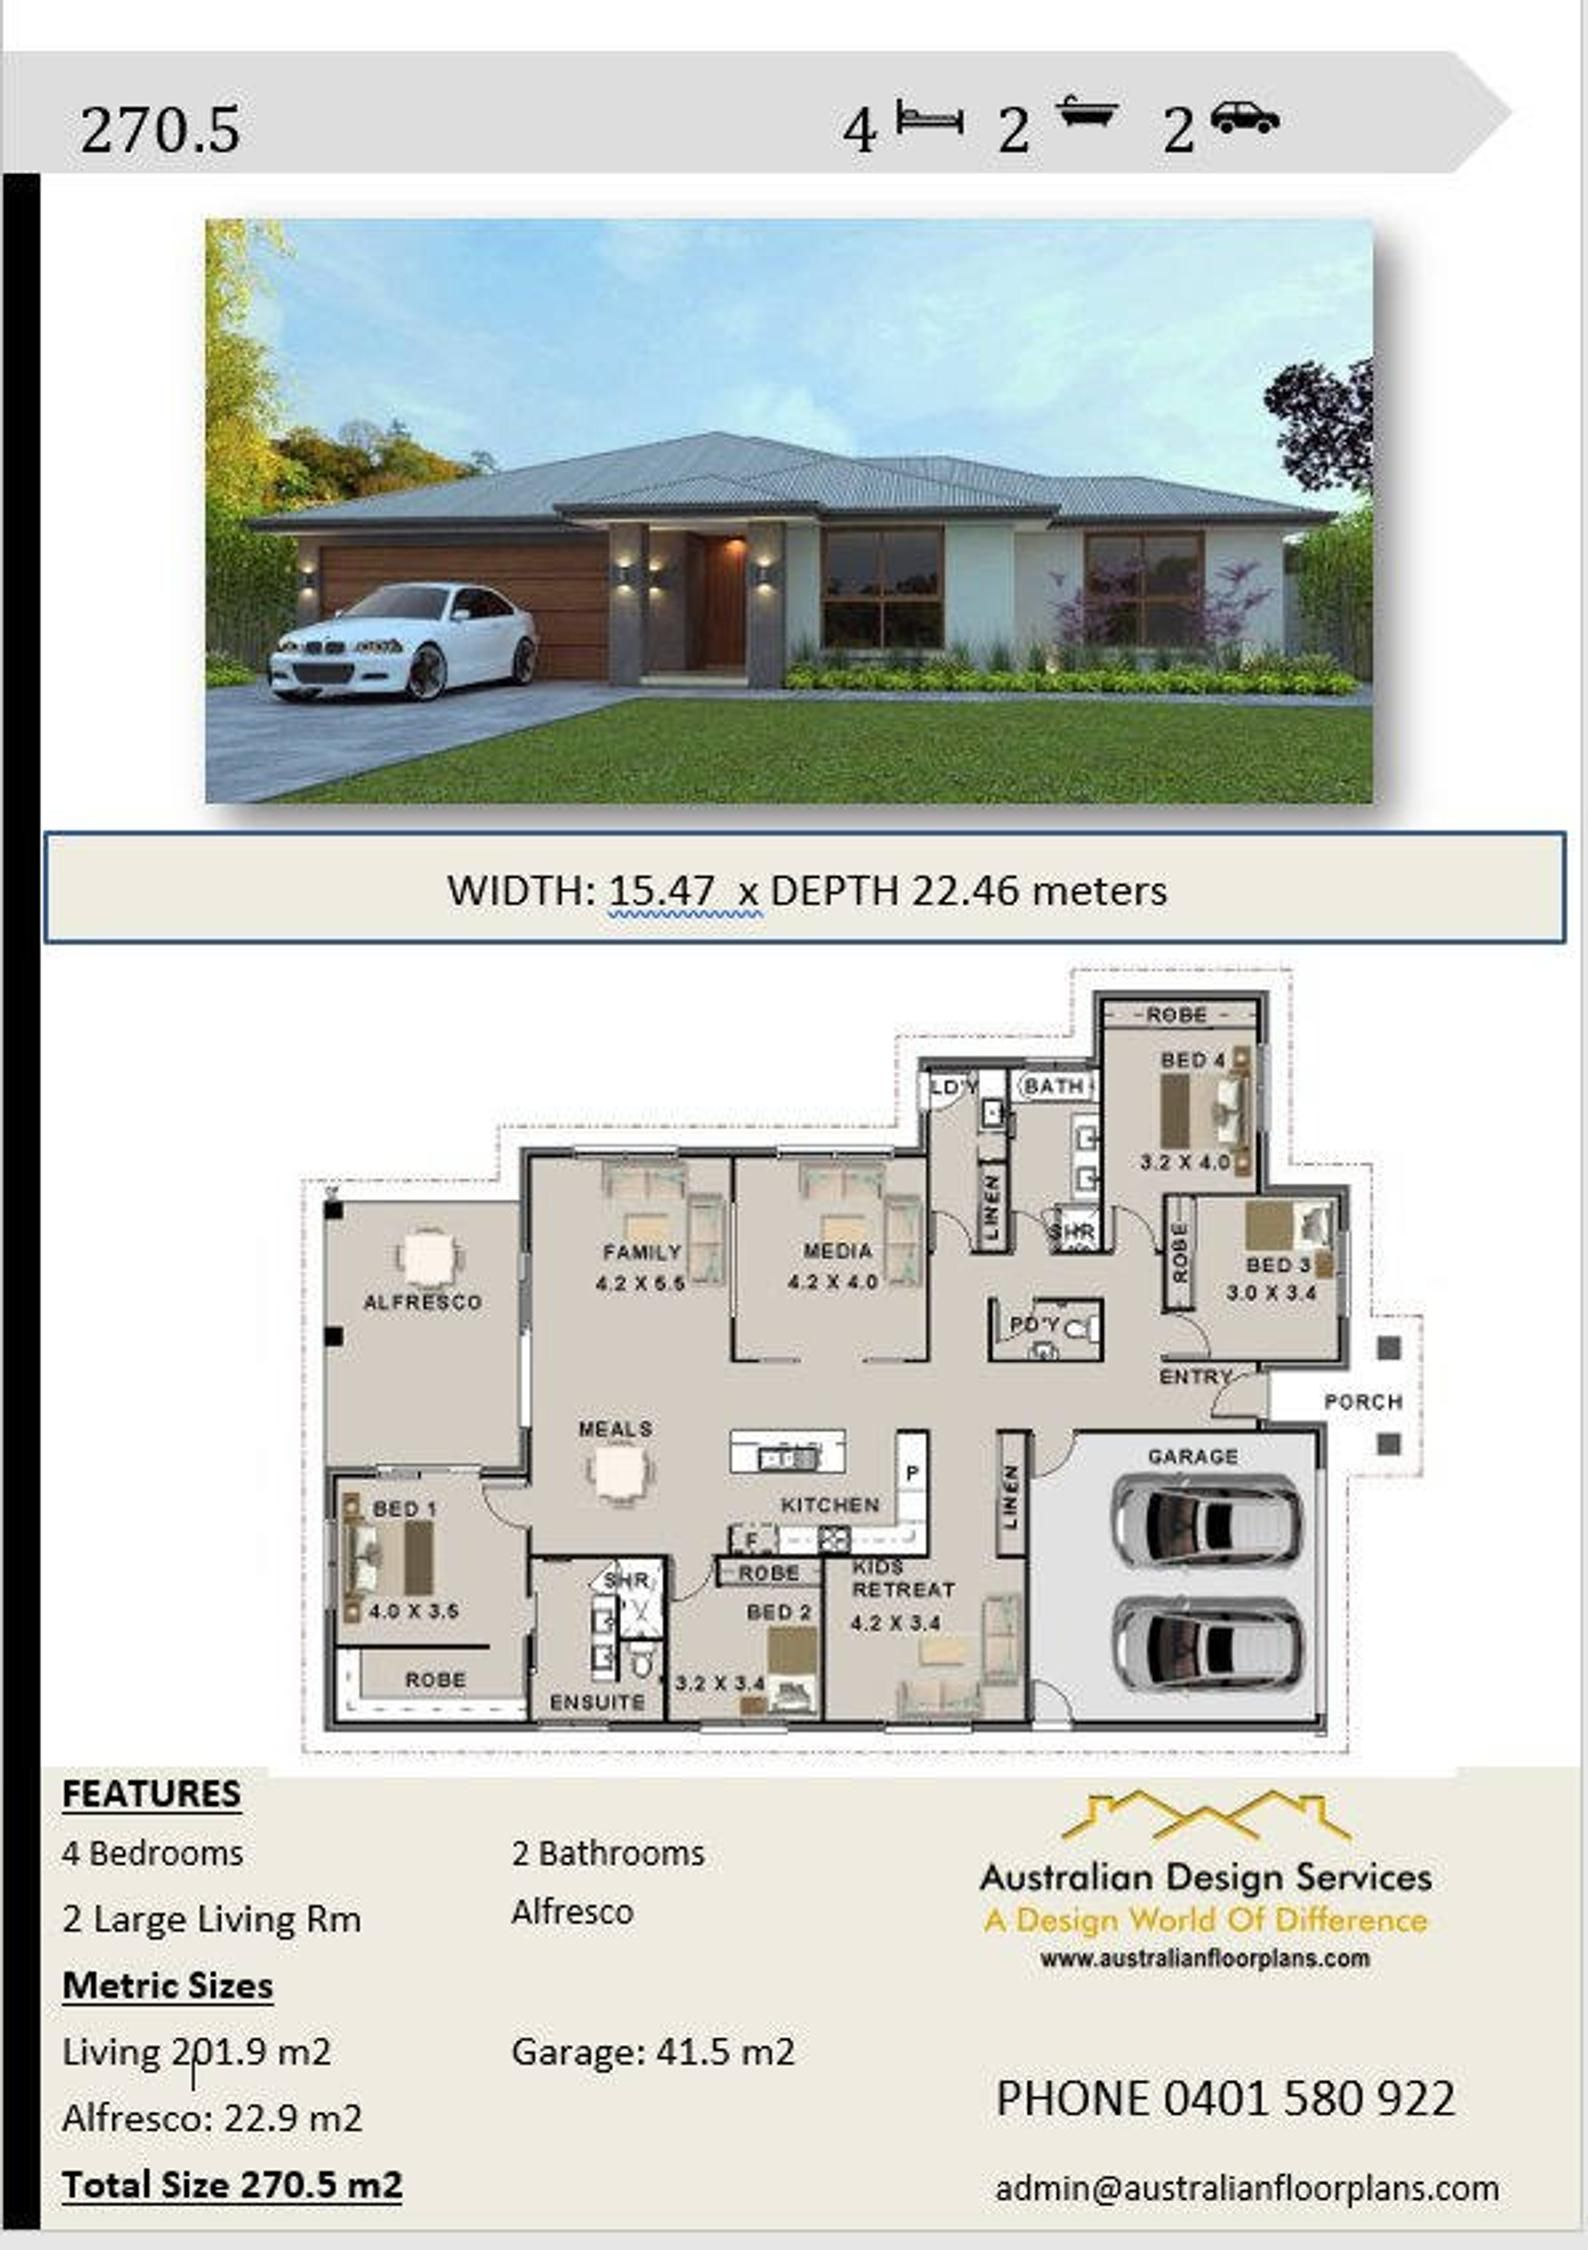 House Plans 270 5 M2 4 Bed House Plan 4 Bedroom Modern 4 Etsy Affordable House Plans Modern House Plans Family House Plans